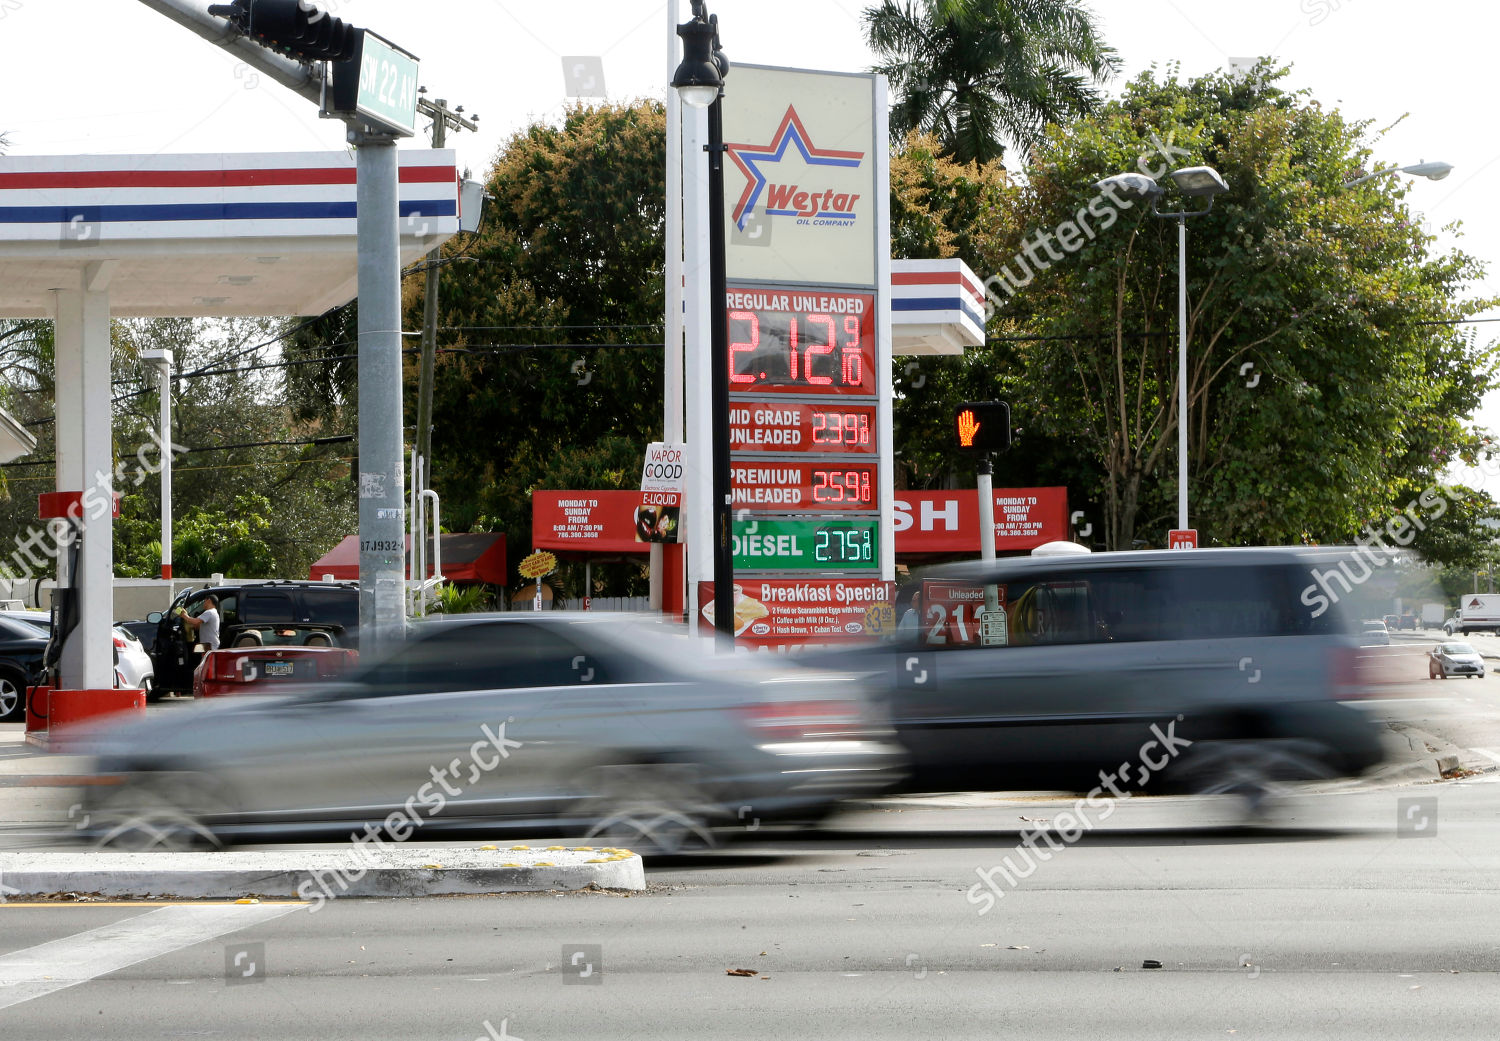 Miami Gas Prices >> Gasoline Prices Displayed Westar Gas Station Miami Editorial